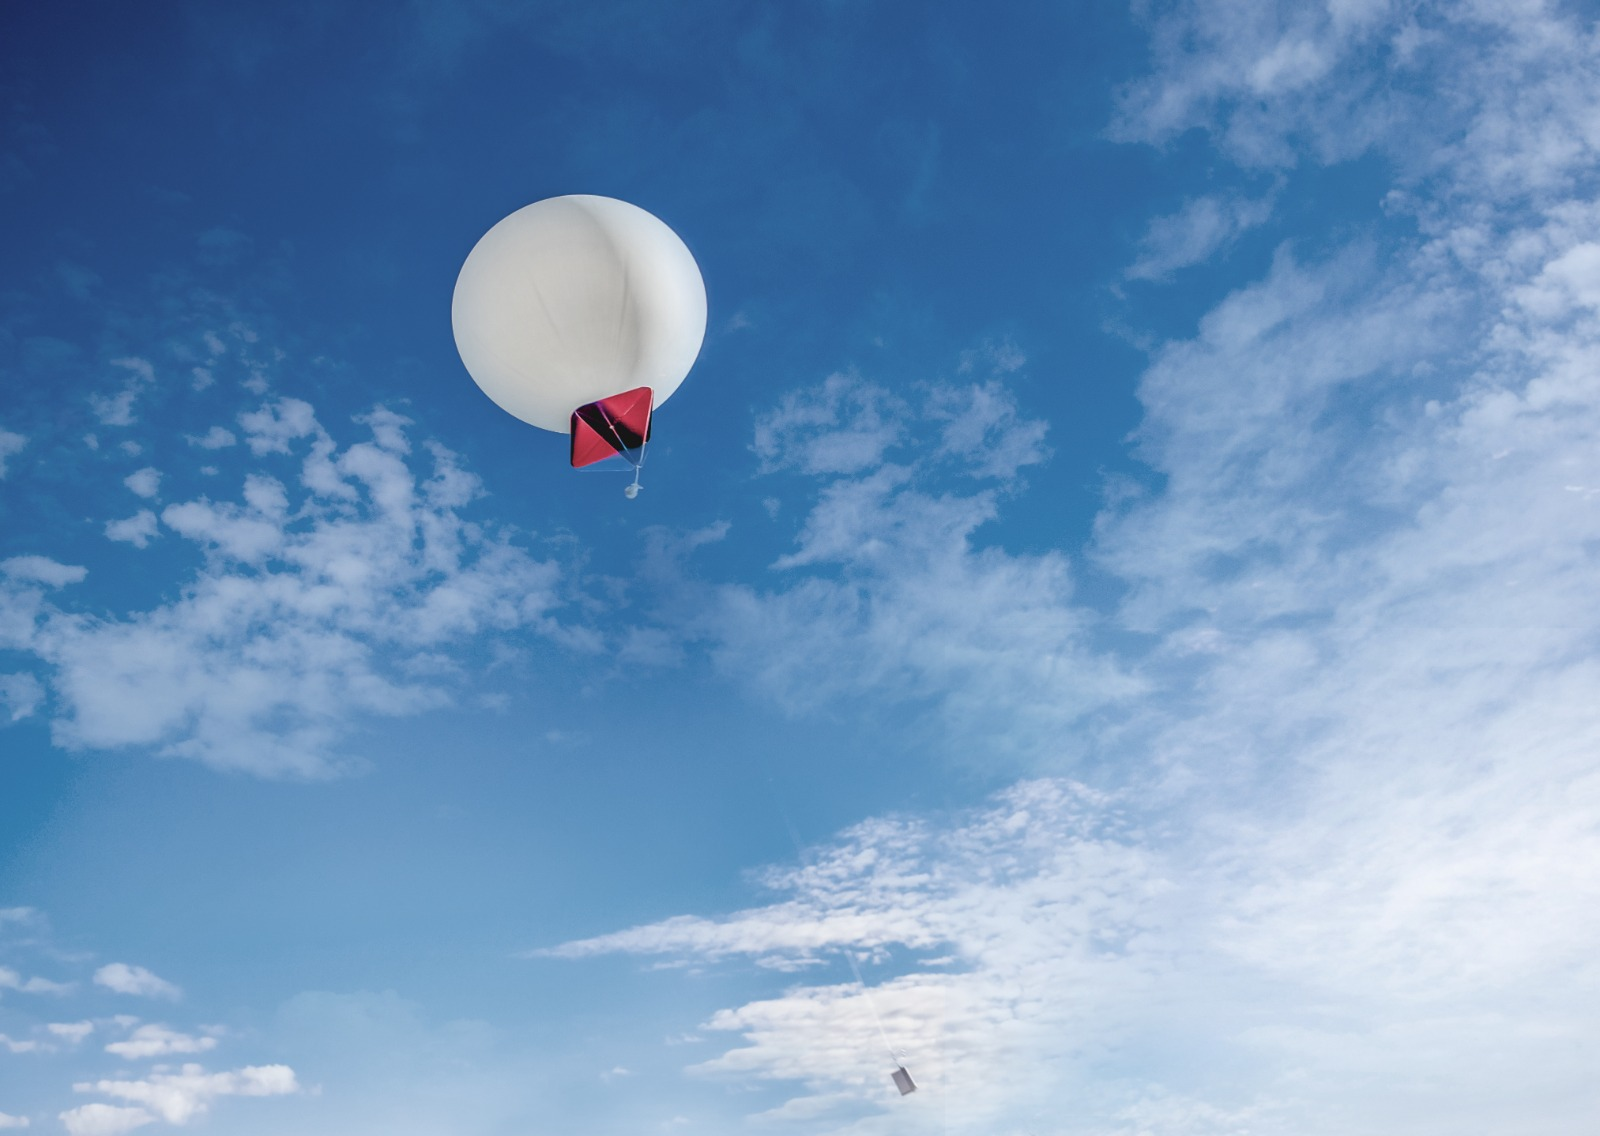 High Hopes plans to extract atmospheric CO2 balloons into hot air